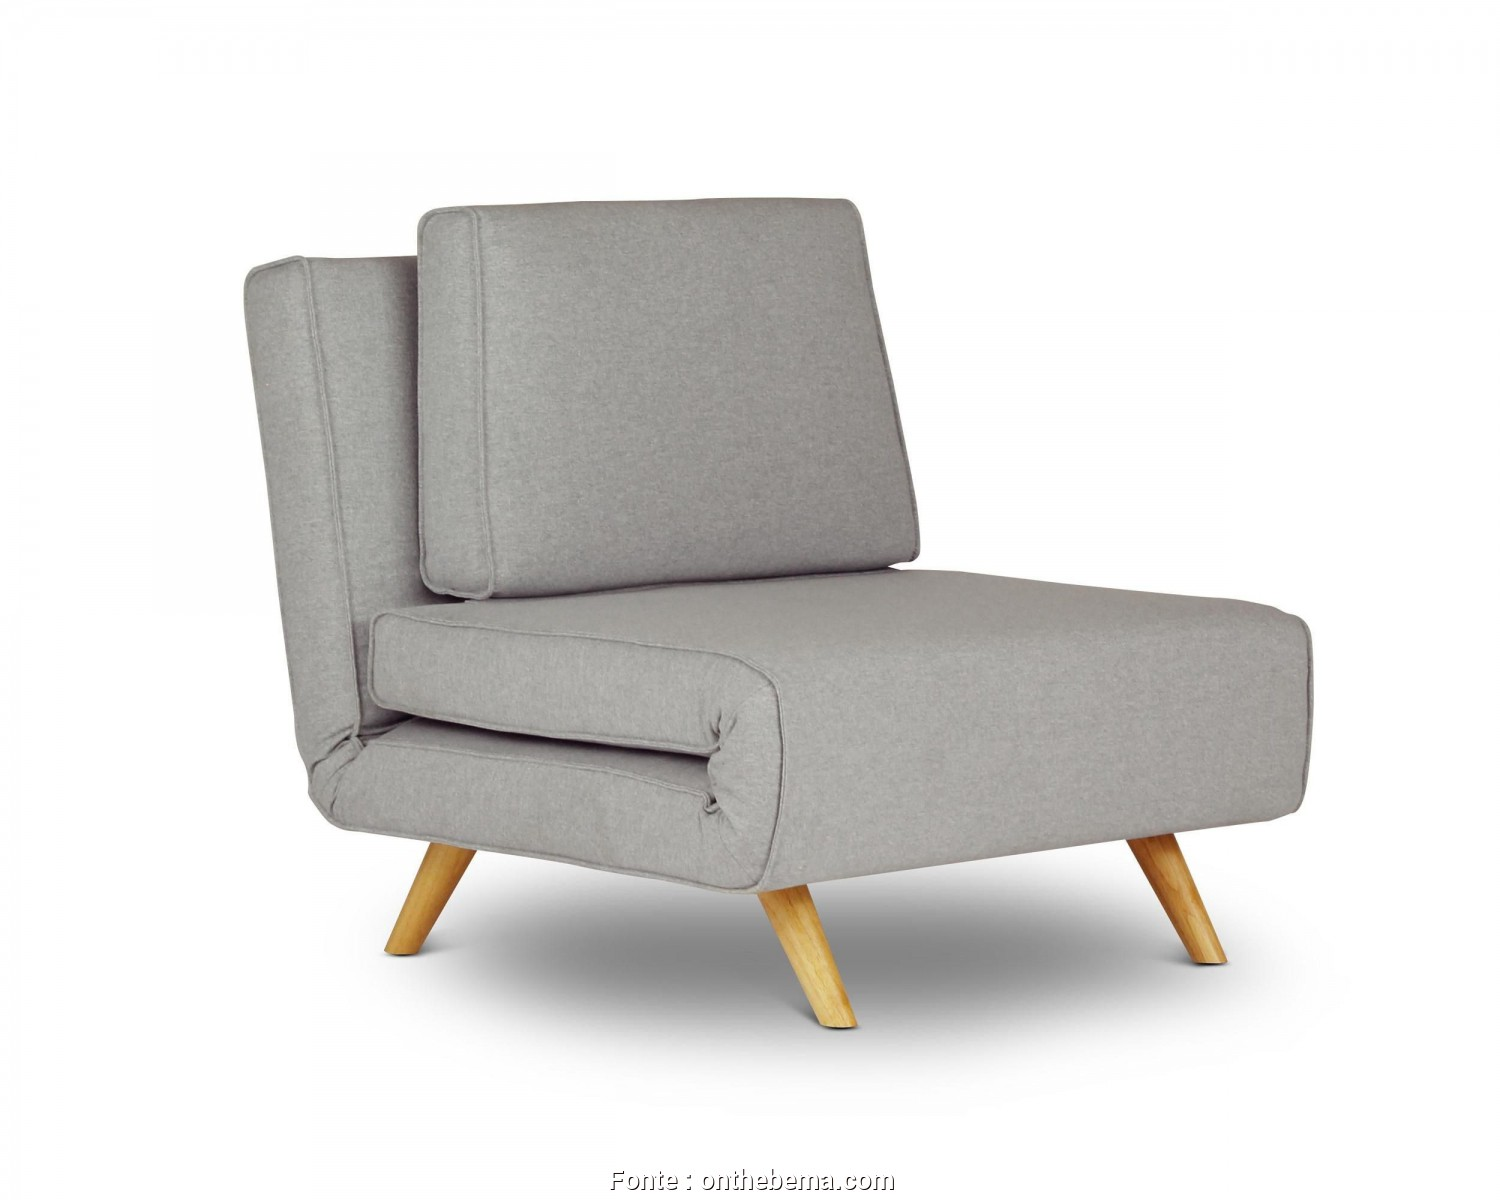 Asarum Ikea, Migliore Ikea Sofa, Single Best Chair Beds To, Or Sleep In